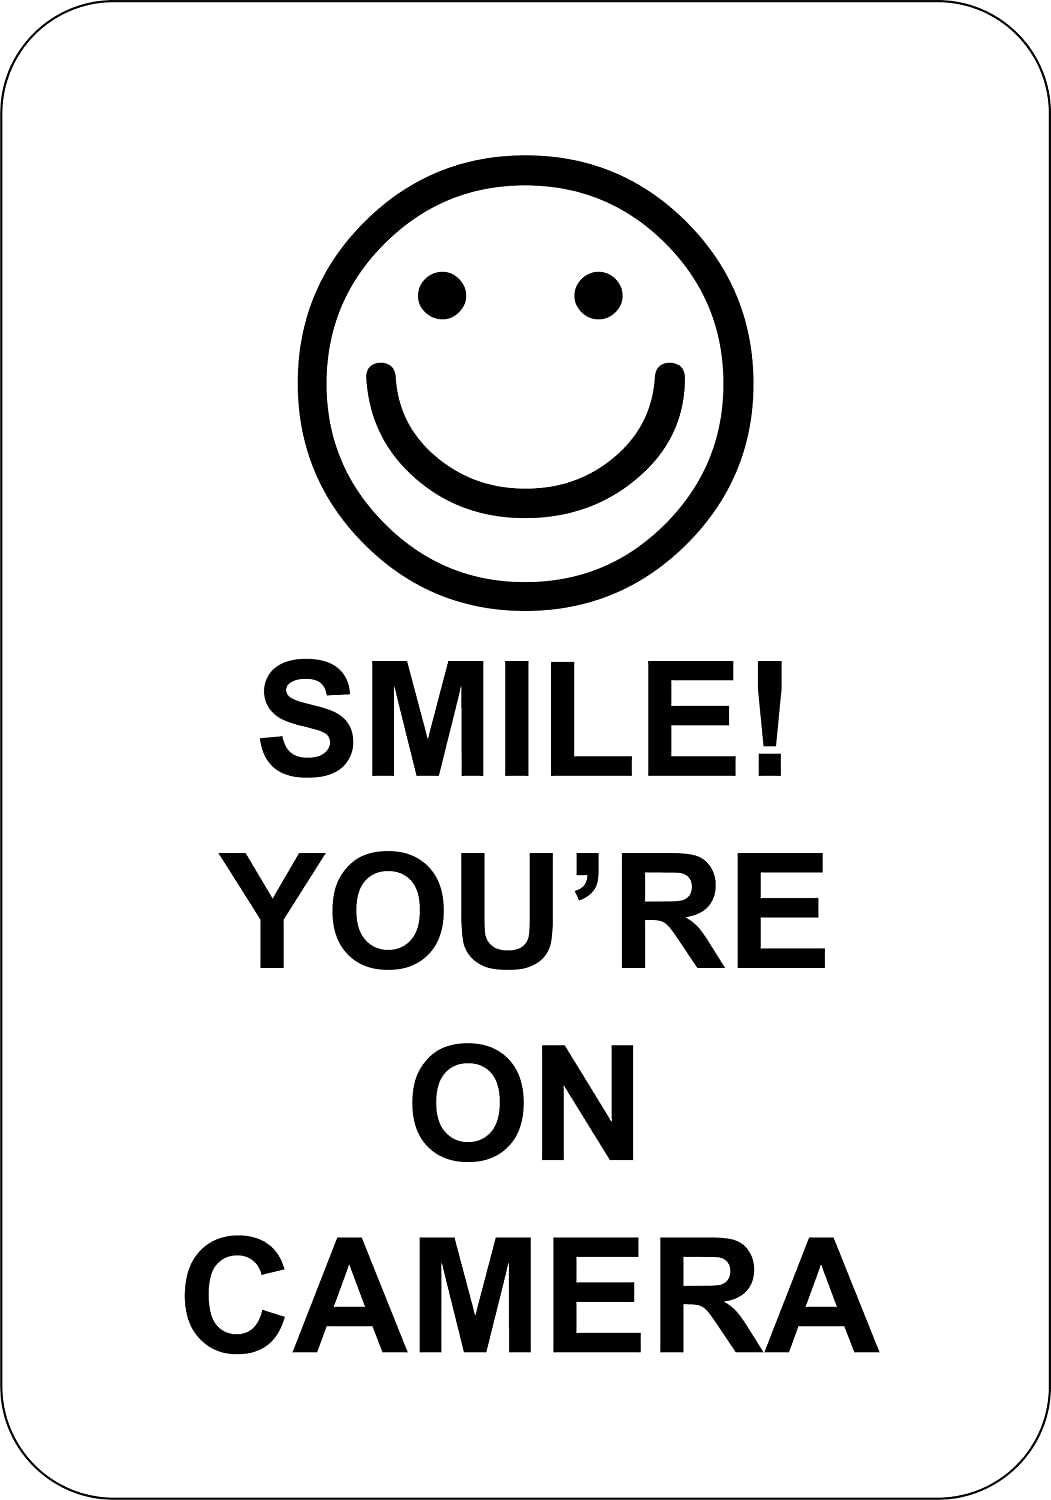 Smile! You're On Camera - Video Camera Surveillance Sign 7